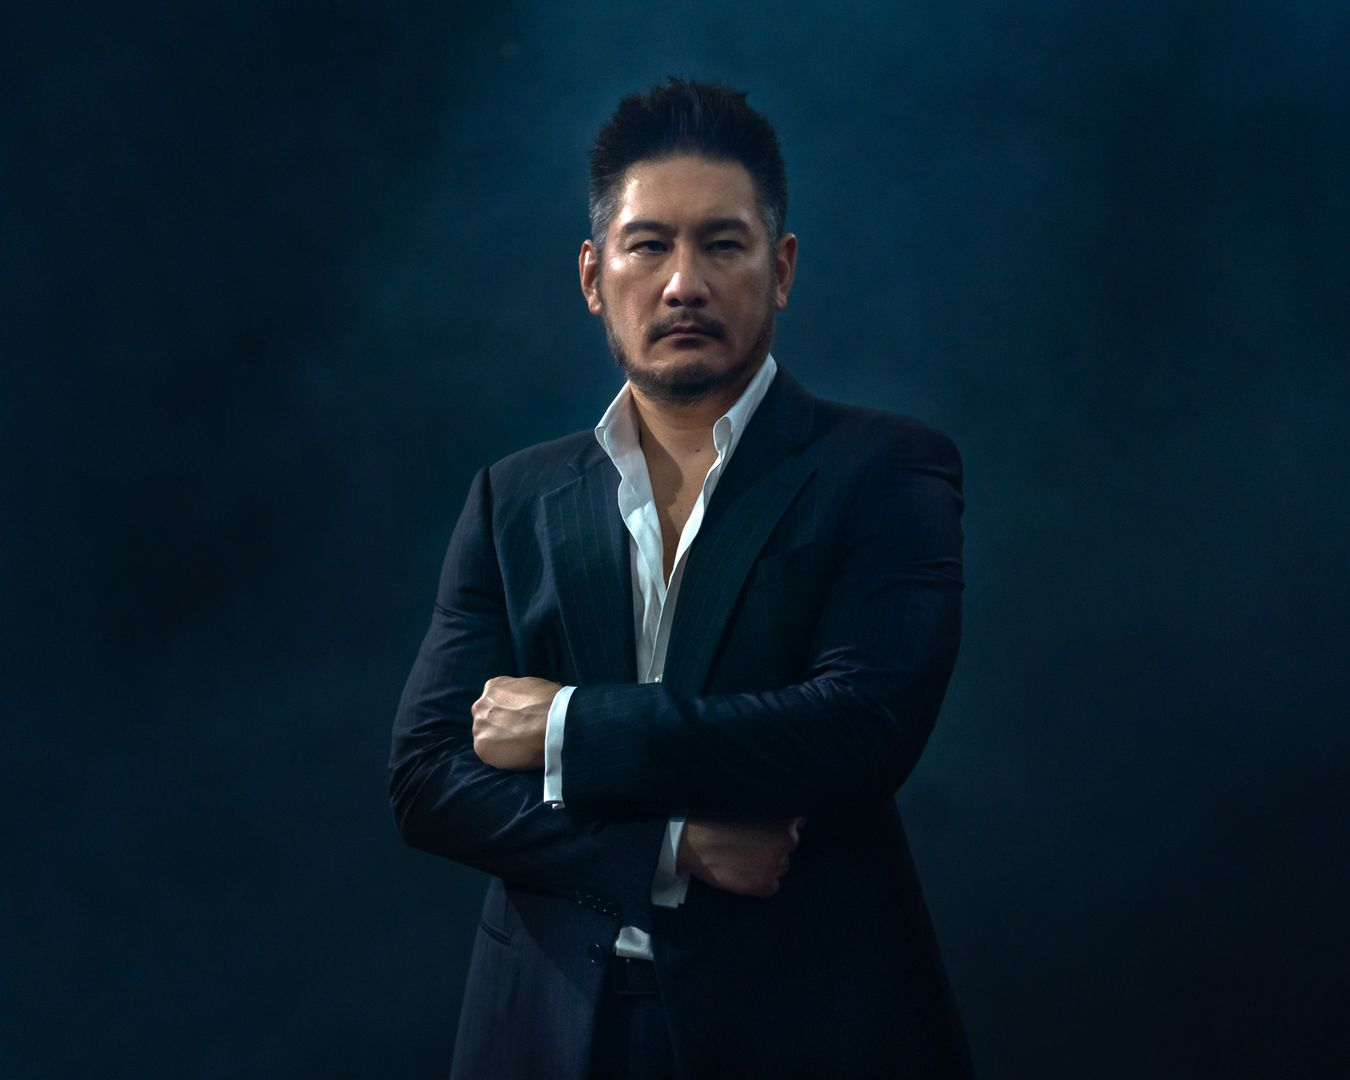 ONE Championship Chairman and CEO Chatri Sityotong